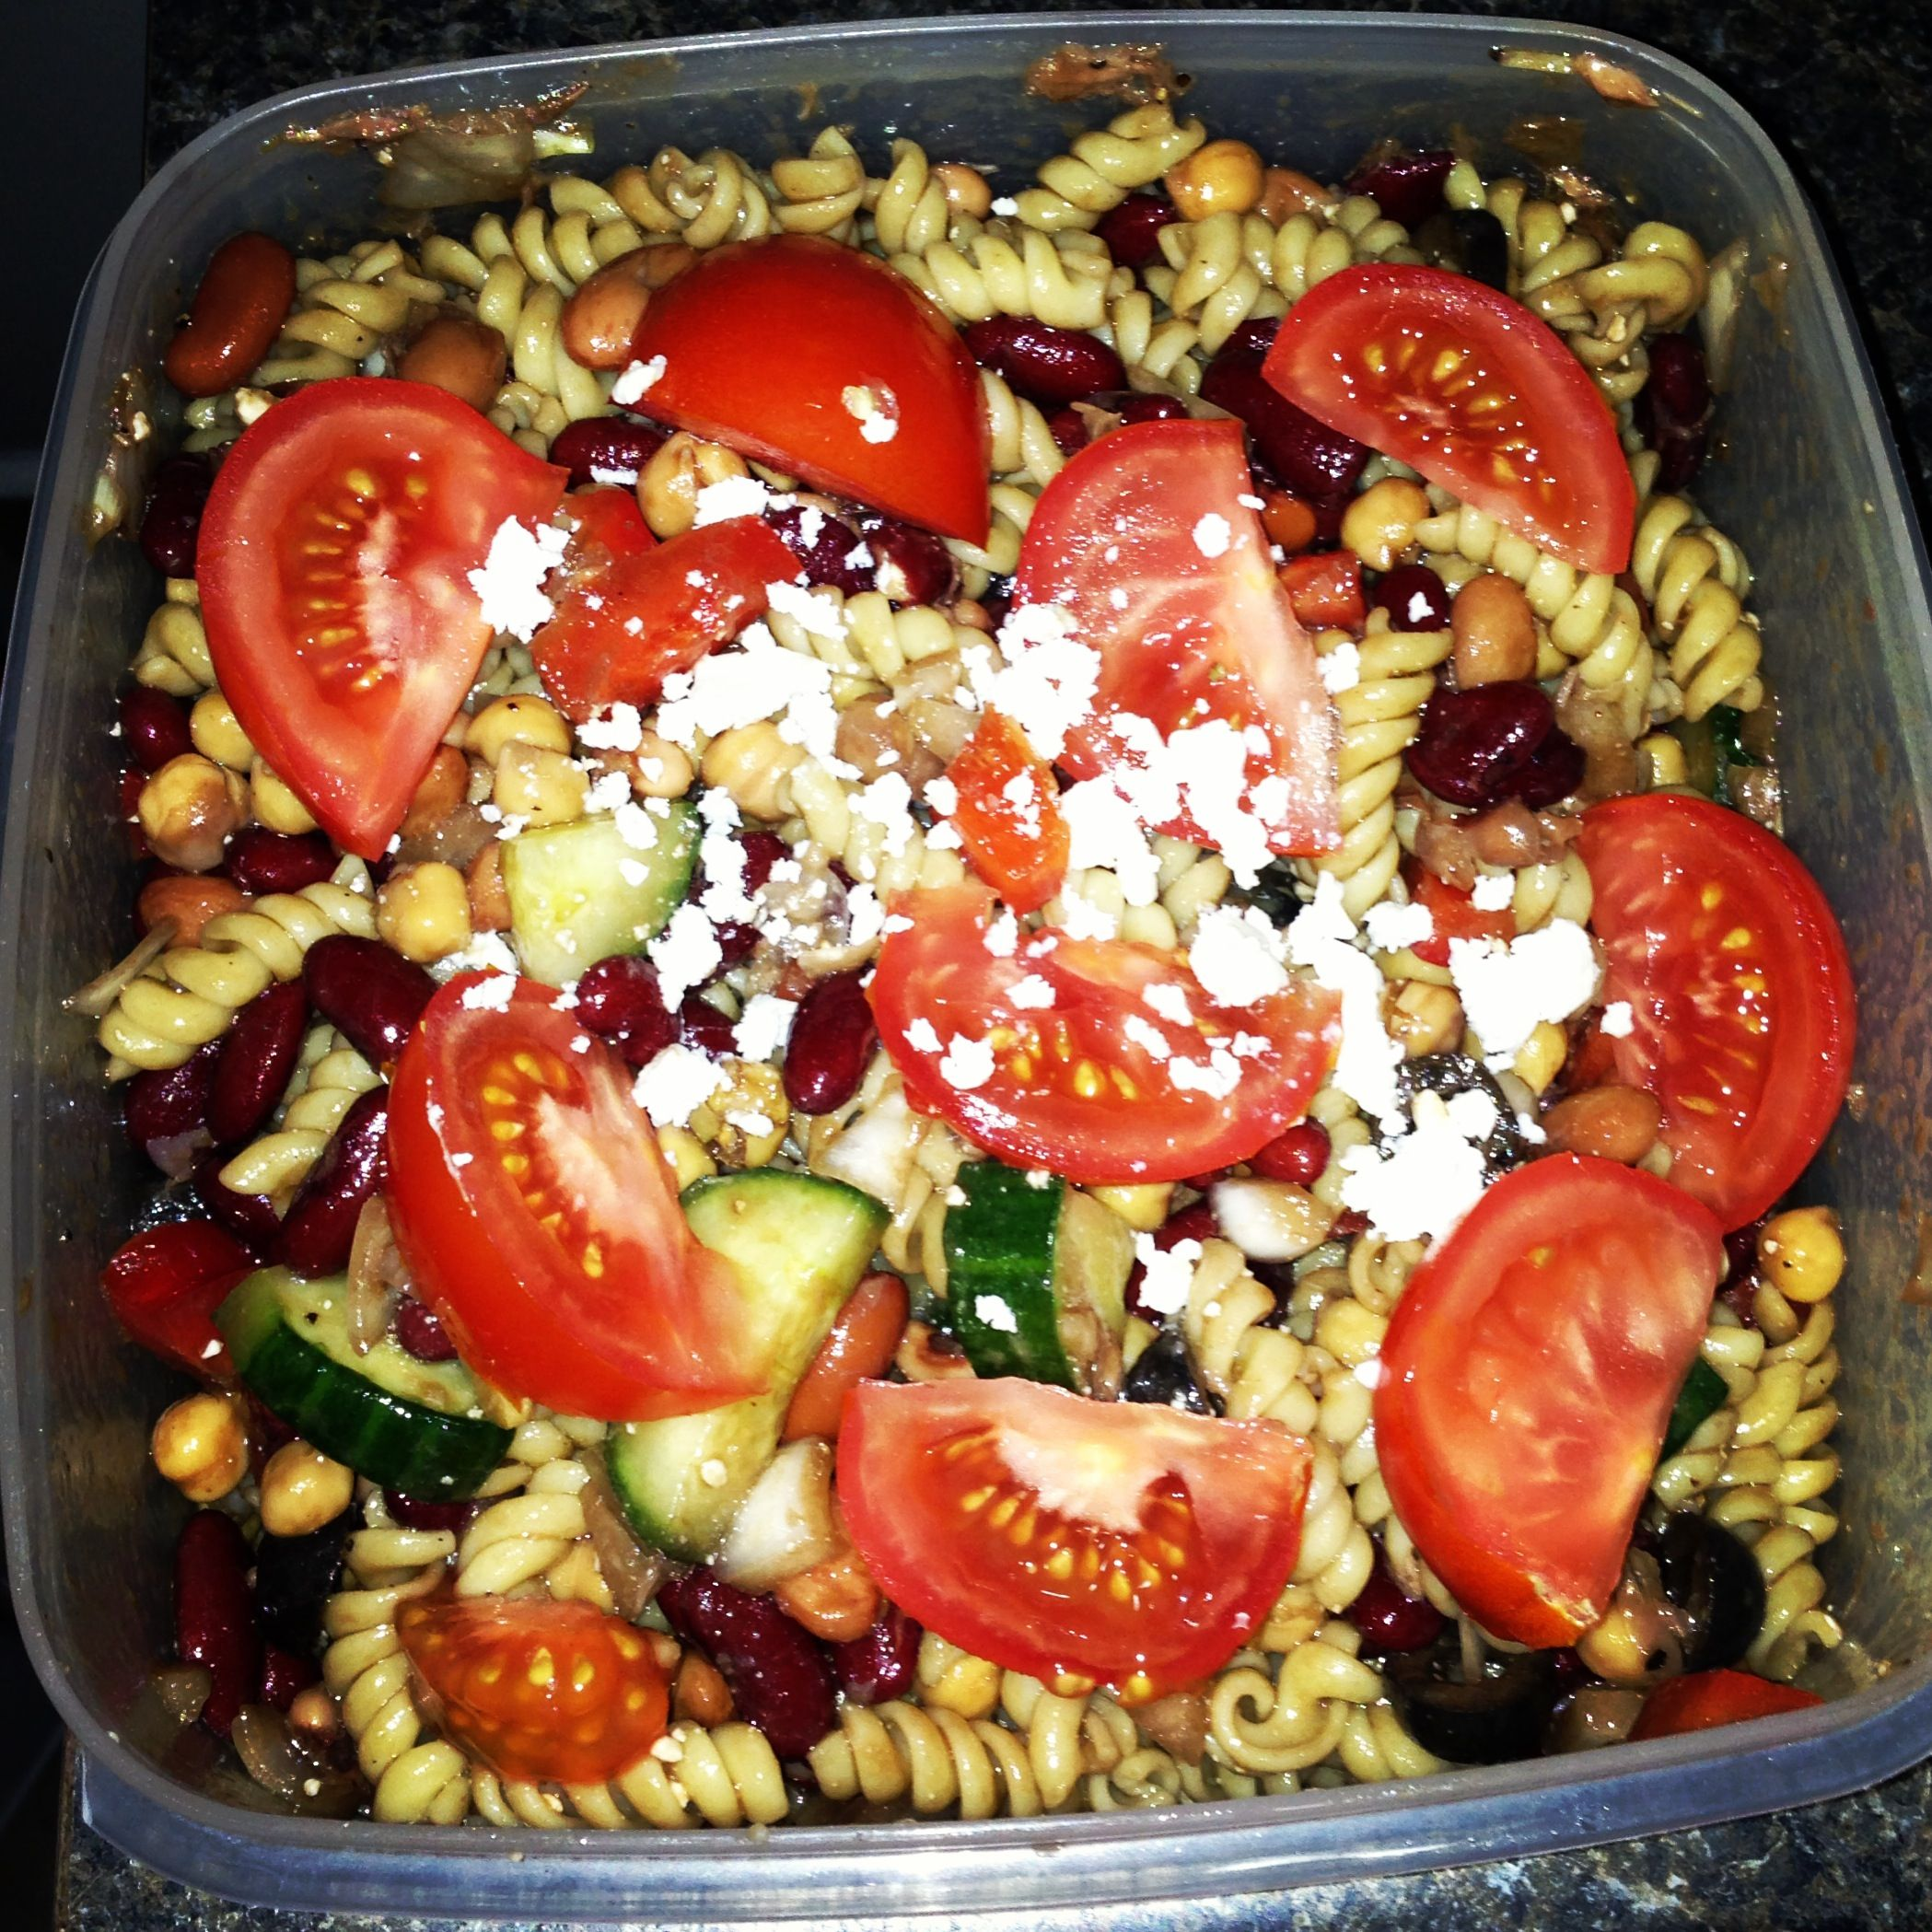 Pin by Denise Iacobucci on recipes | Pinterest